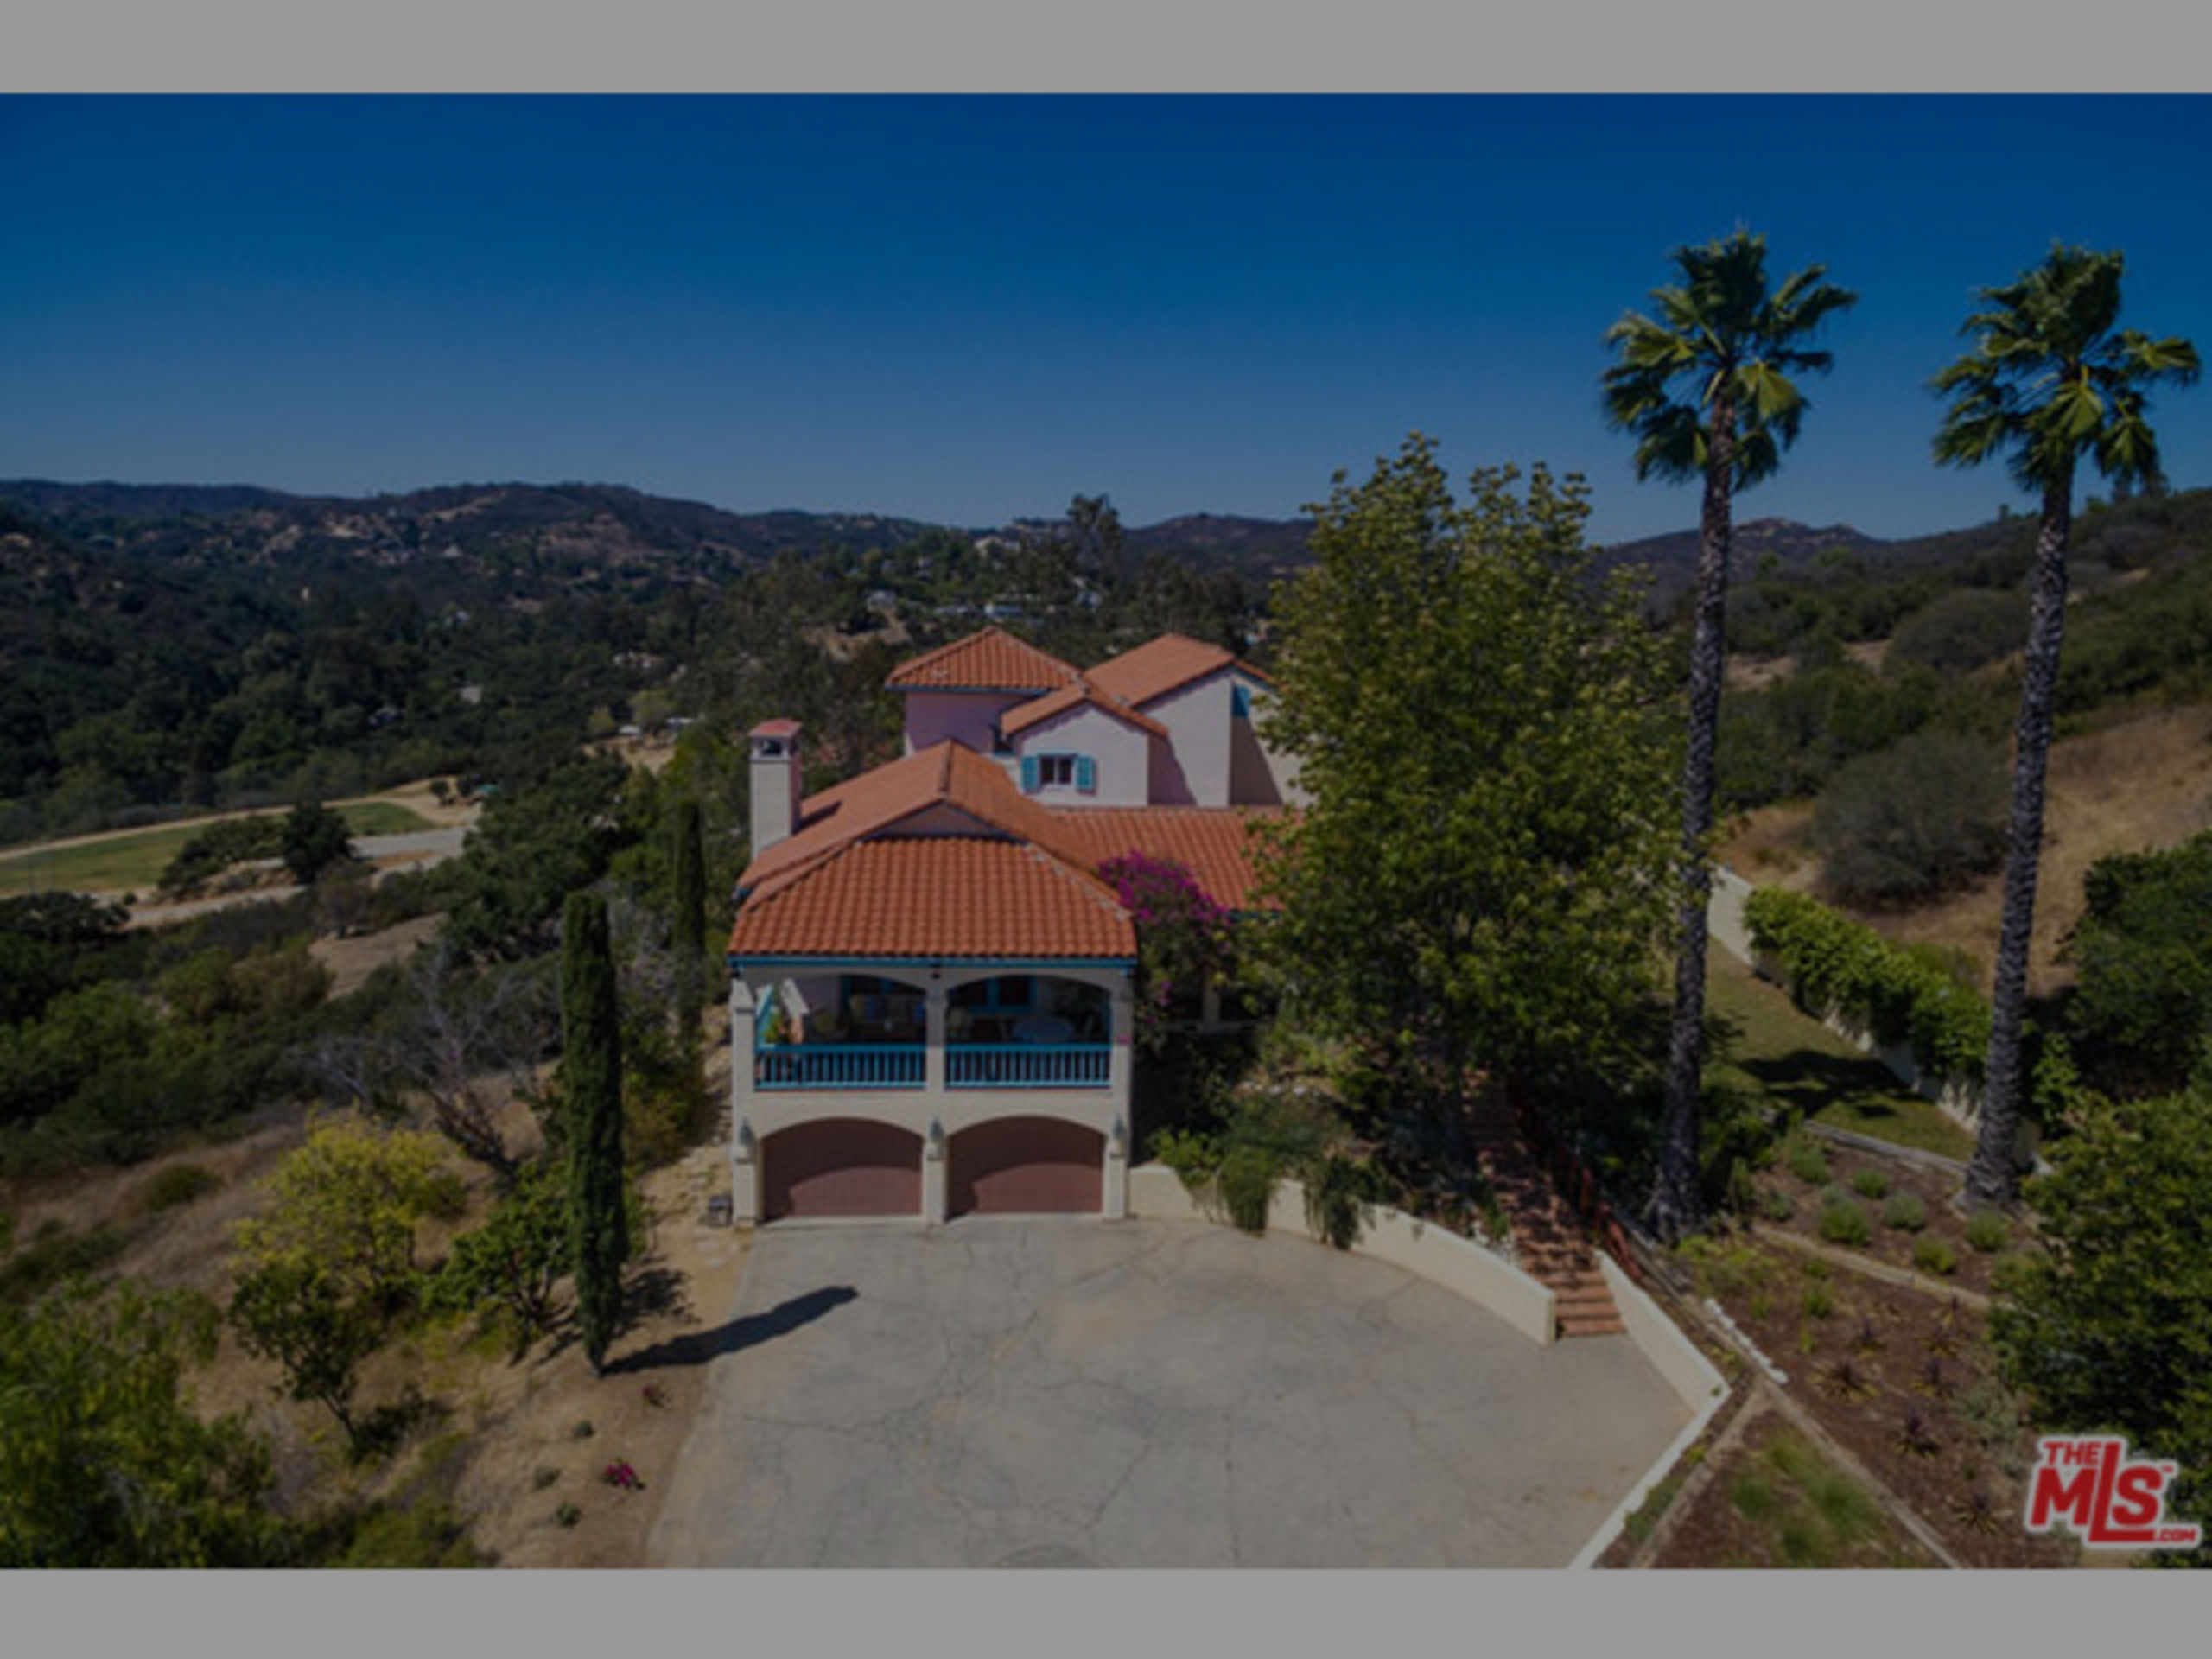 SOLD | TUSCAN ON 2.6 ACRES NEAR TOPANGA STATE PARK | $1,875,000